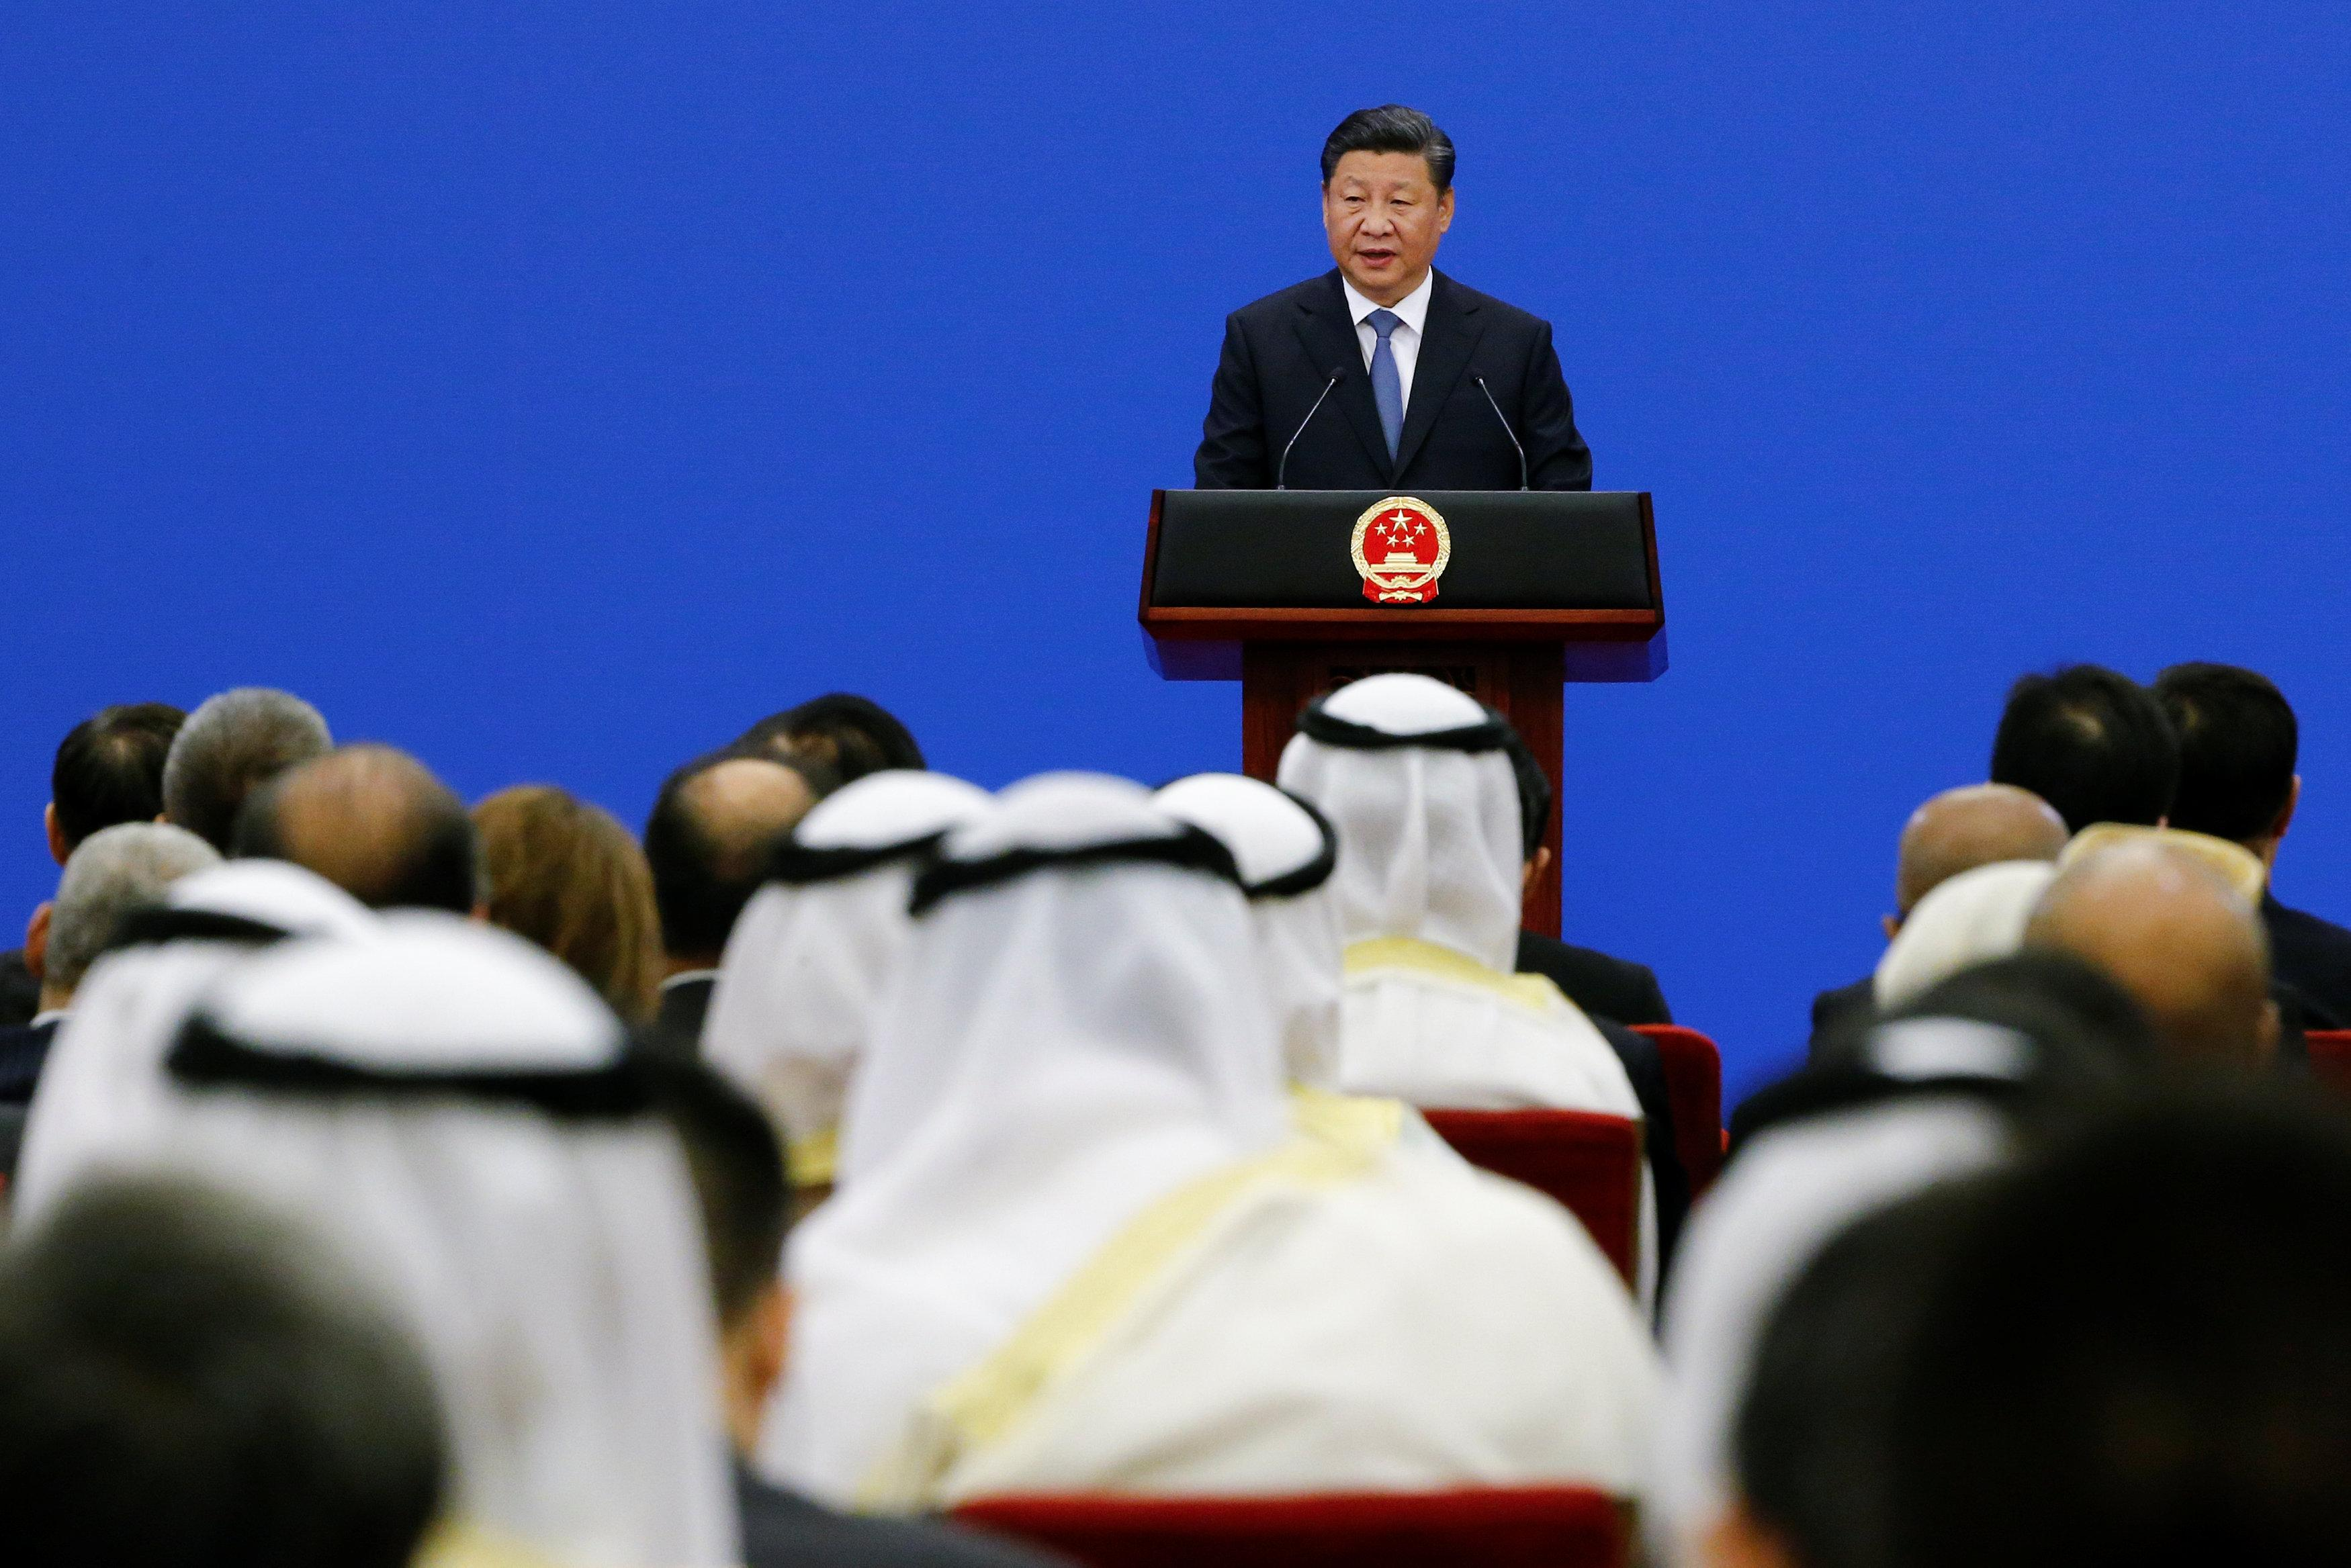 Chinese President Xi Jinping speaks to representatives of Arab League member states at a China Arab forum at the Great Hall of the People in Beijing, China, July 10, 2018. Thomas Peter